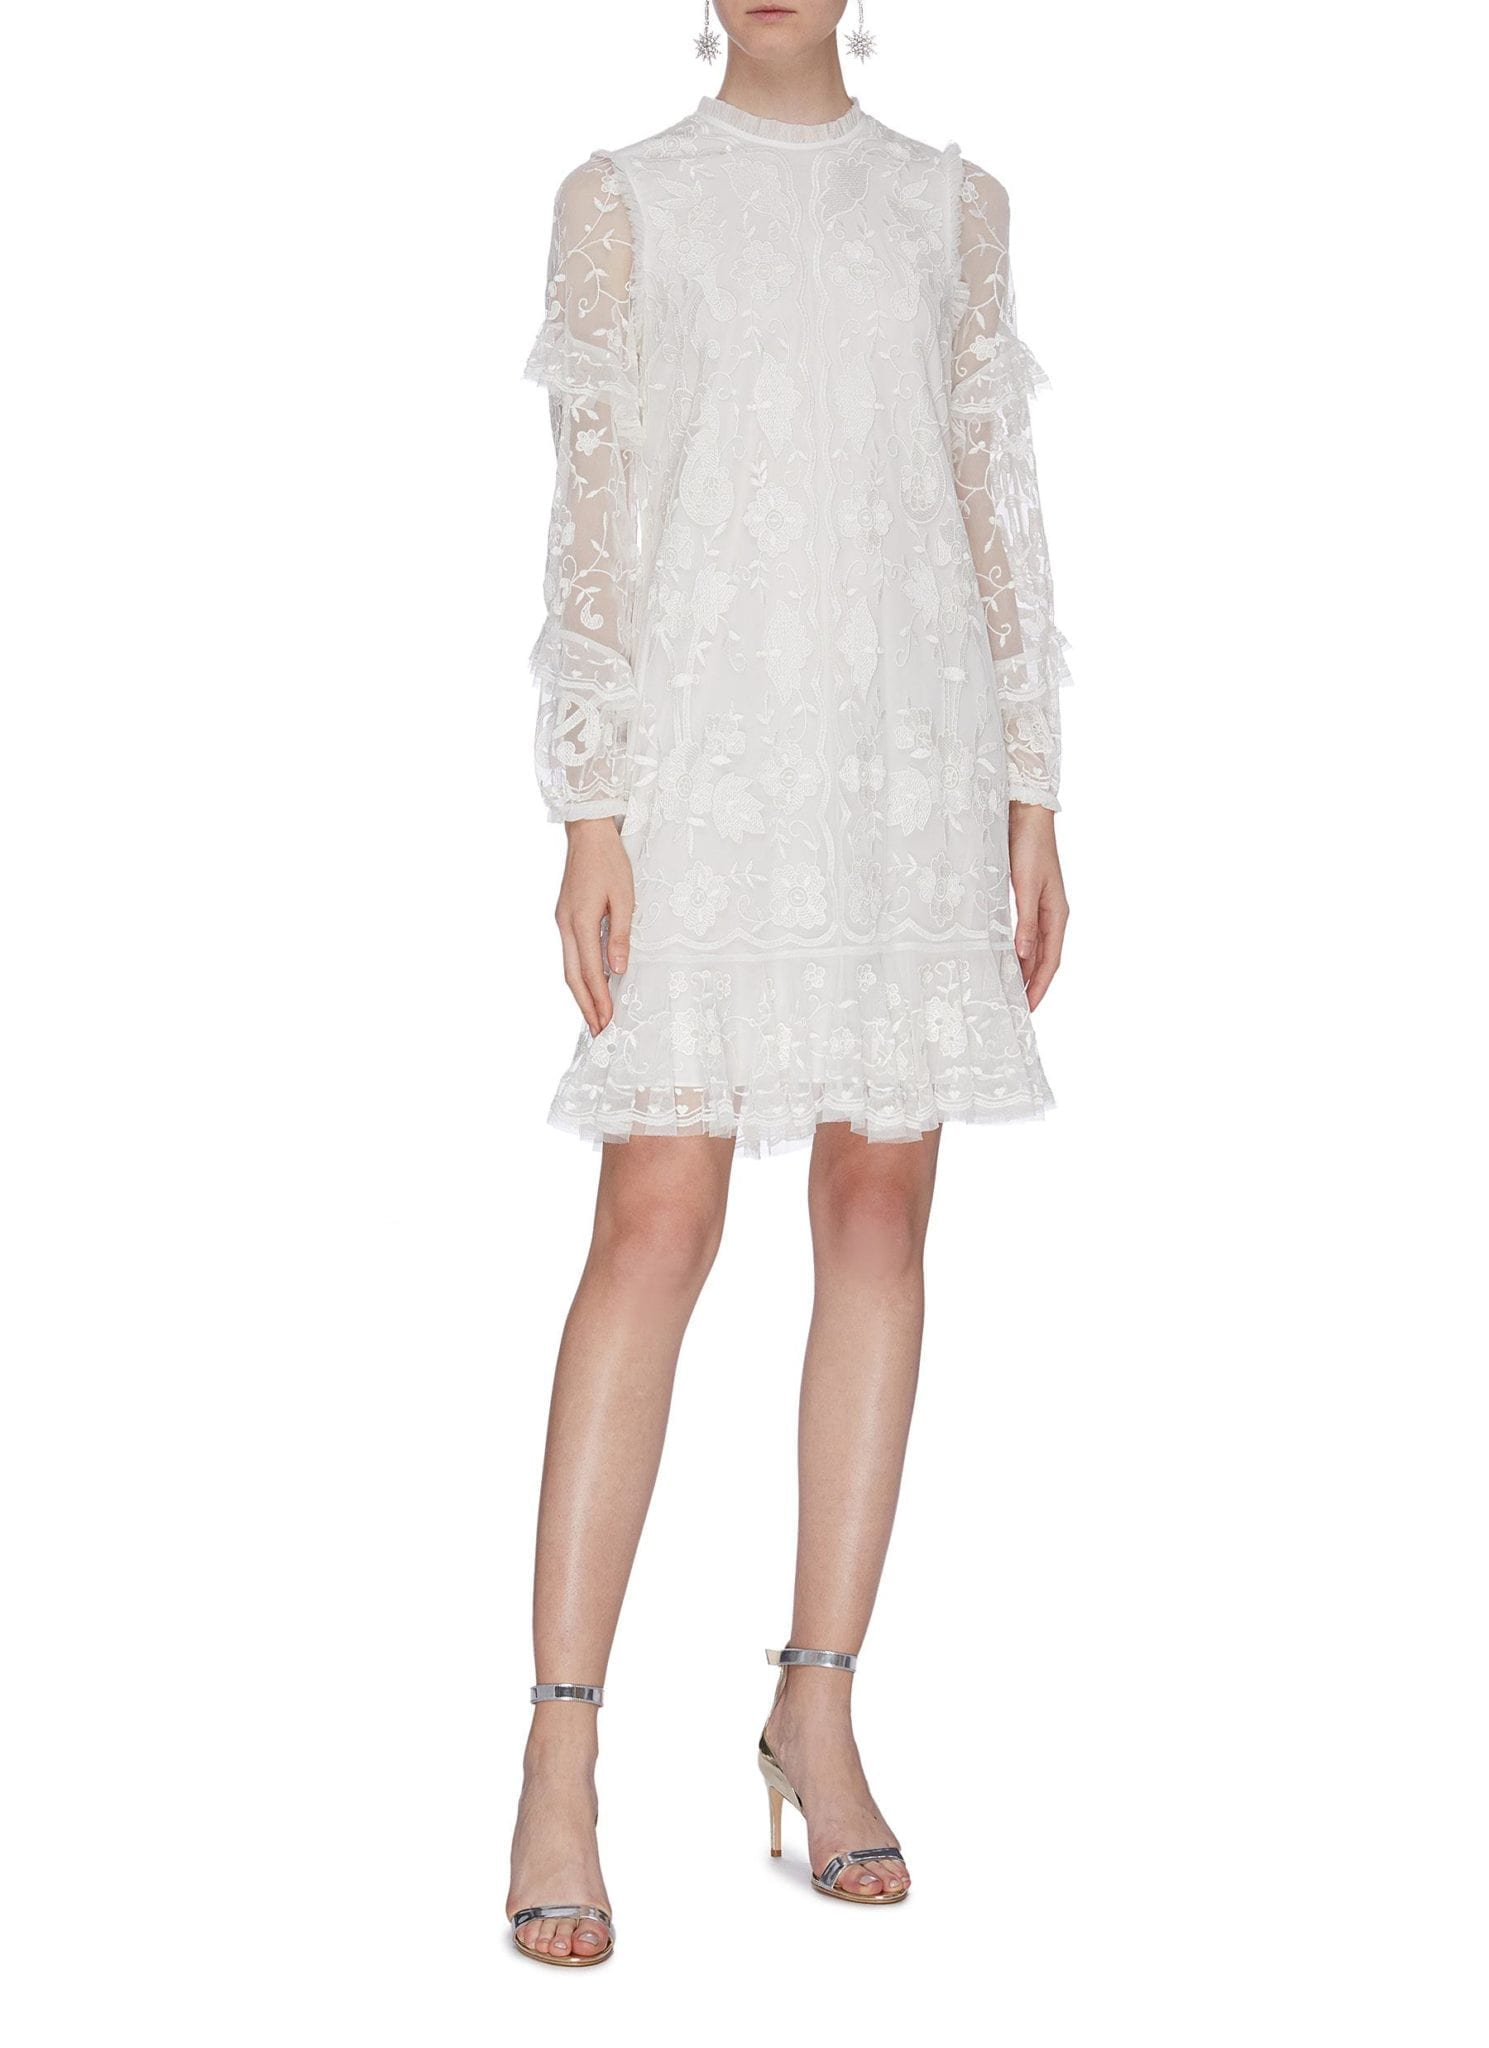 NEEDLE & THREAD 'Ellie' Ruffle Sleeve Floral Embroidered Tulle Dress